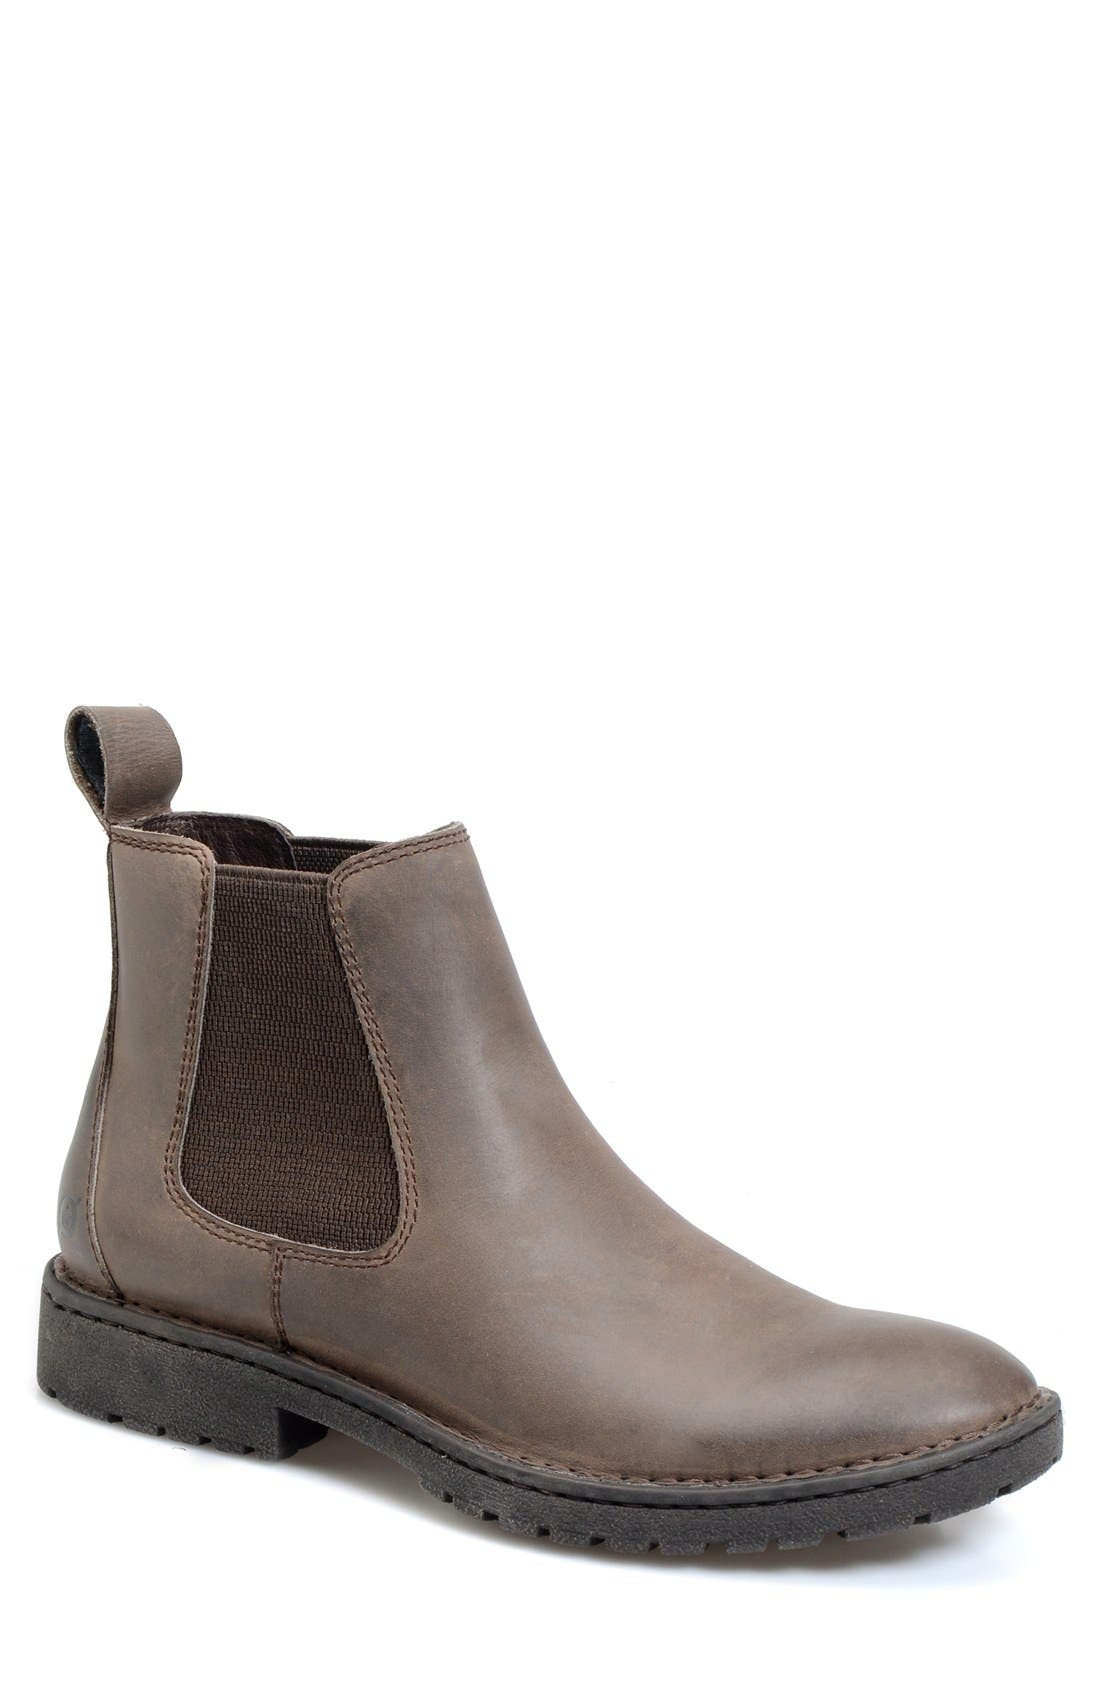 Alternate Image 1 Selected - Børn 'Julian' Chelsea Boot (Men)